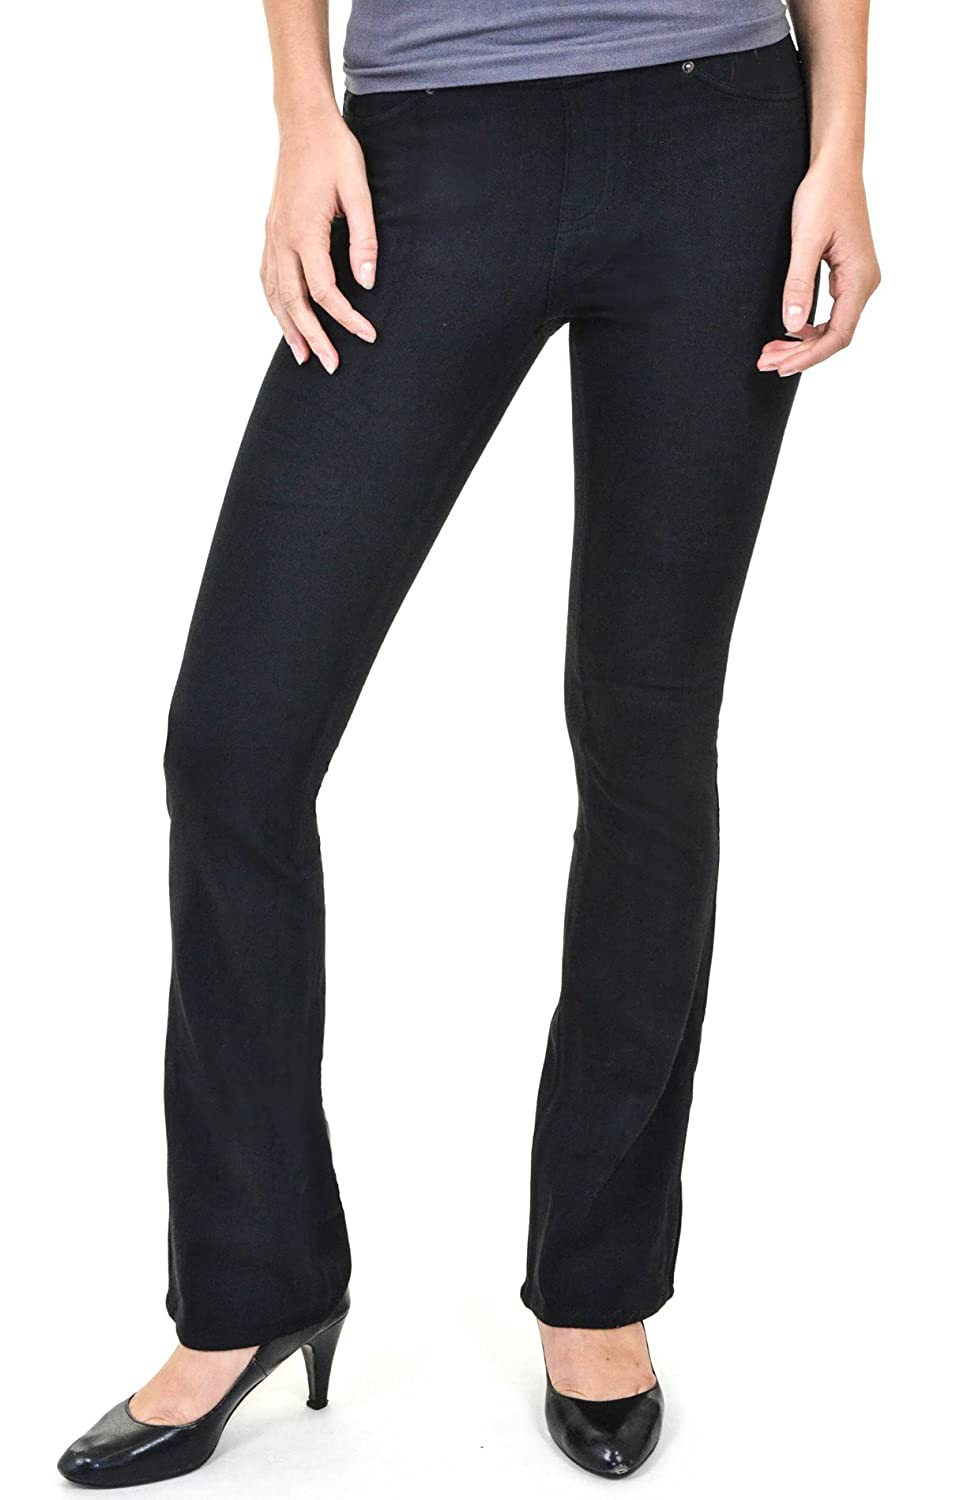 5b3070e336c1d Hue The Original Jeans Boot Cut Leggings (Black, S): Amazon.ca: Sports &  Outdoors